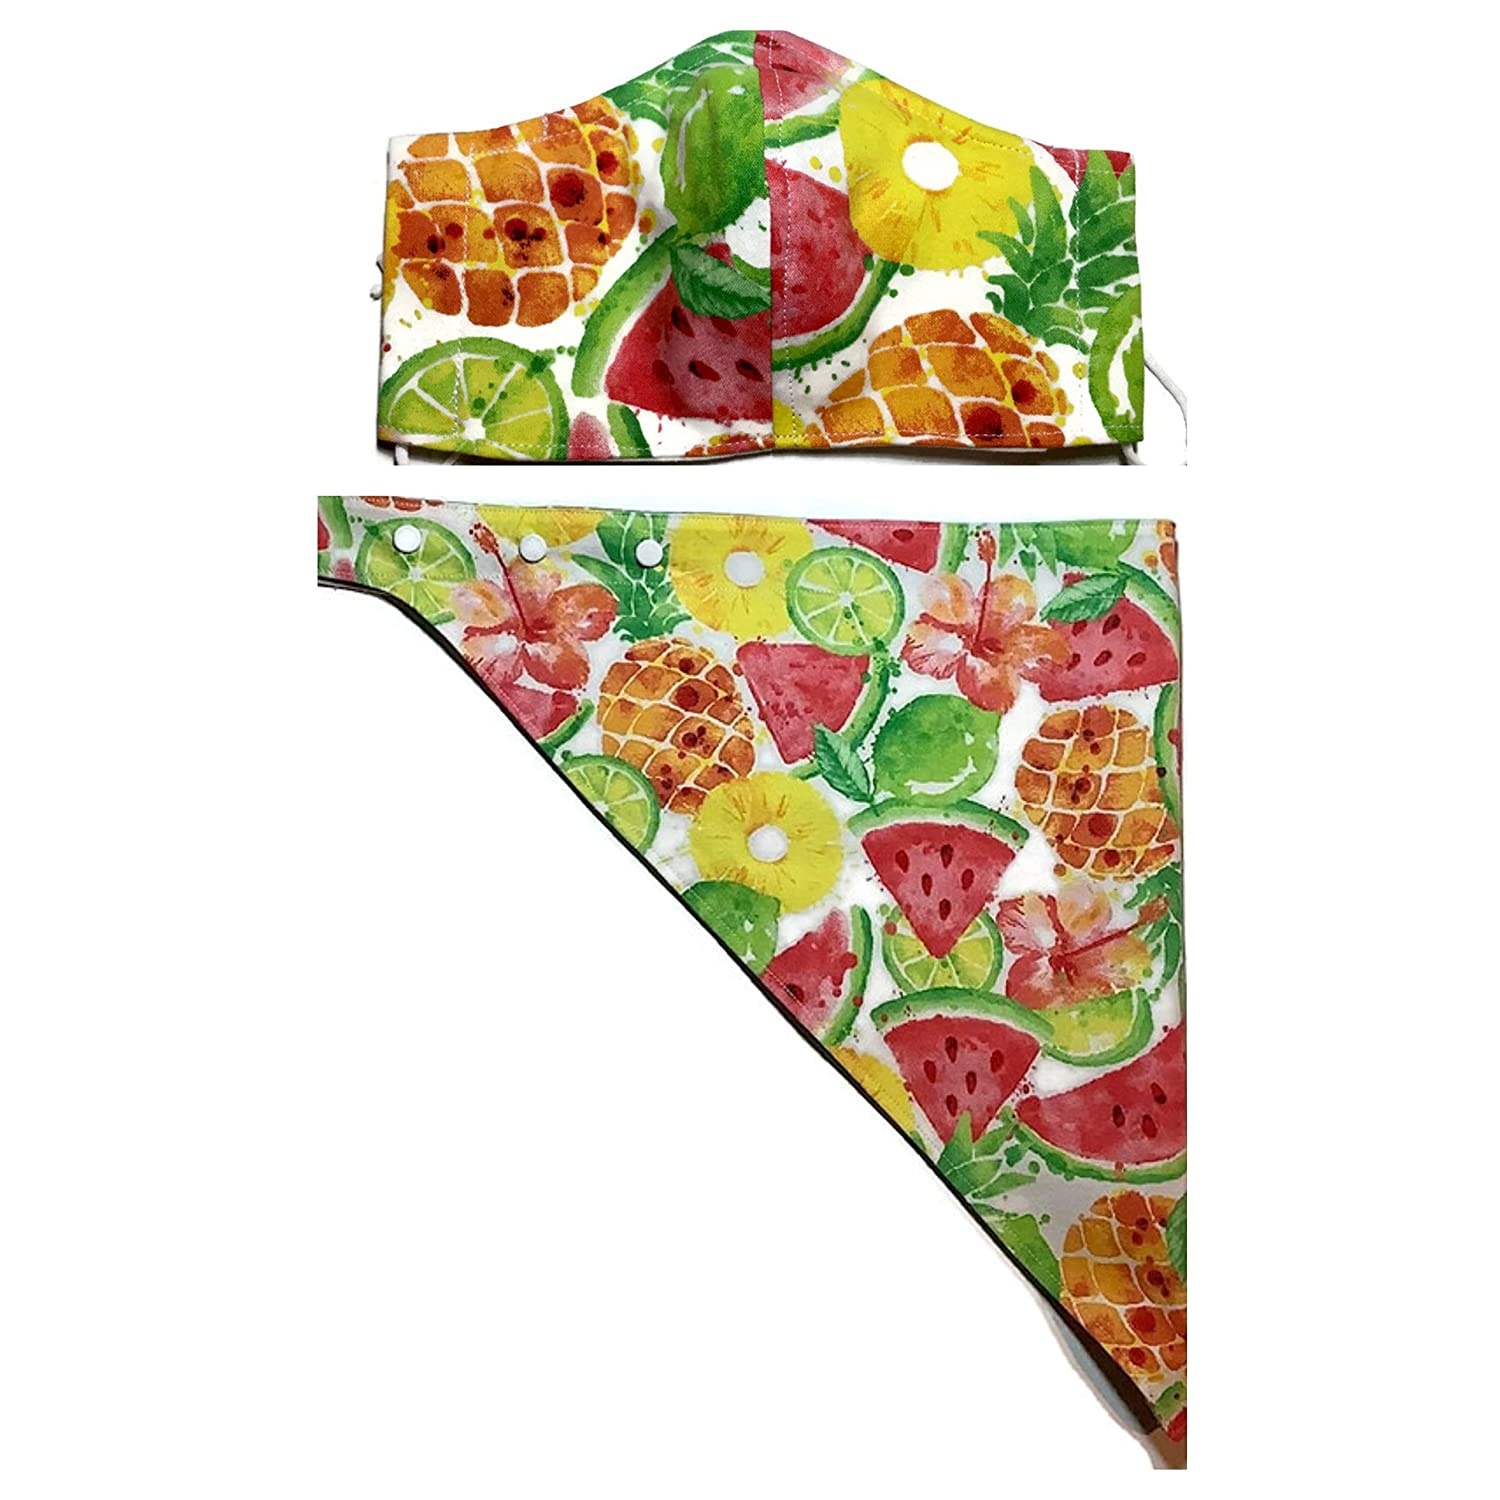 Matching Set Tropical Fruit Puppy Dog Bandana Fitted Face Mask, Watermelon Lime Pineapple Slice Hibiscus Hawaiian, 100% Cotton cloth, Adjustable Fit Snap-On, Ear Elastic Around Head Tie Nose Wire